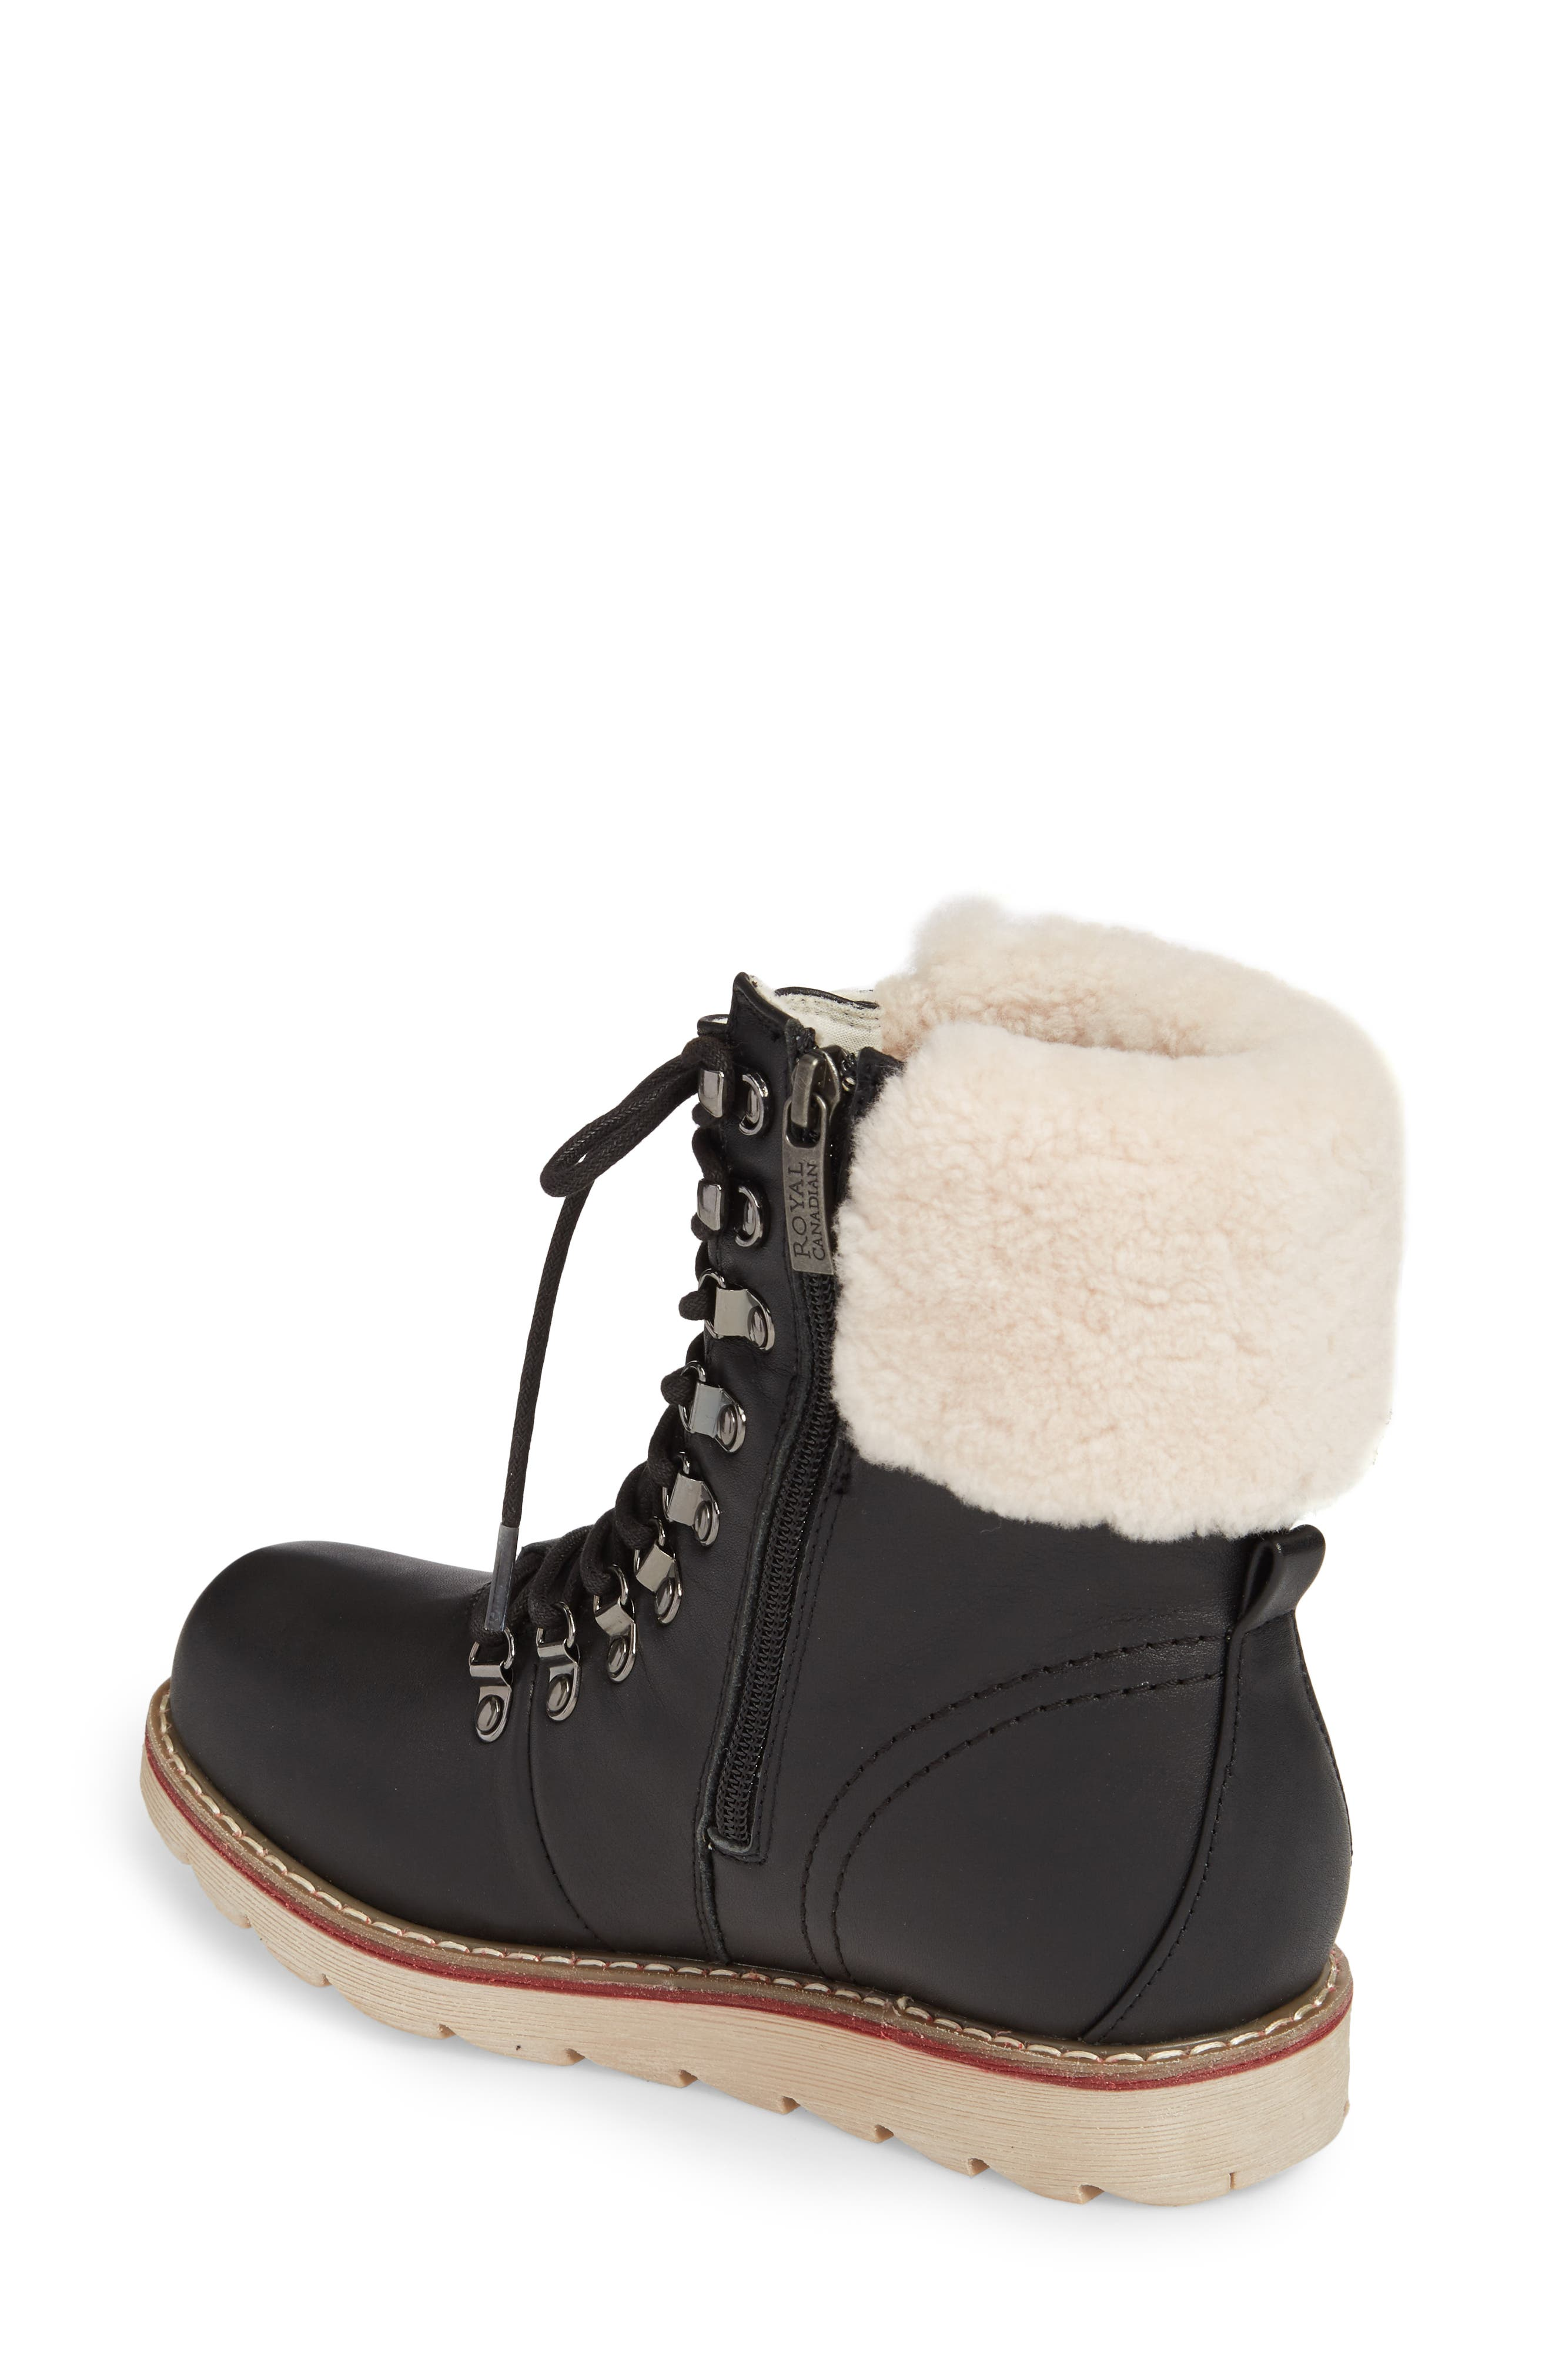 Lethbridge Waterproof Snow Boot with Genuine Shearling Cuff,                             Alternate thumbnail 2, color,                             BLACK LEATHER